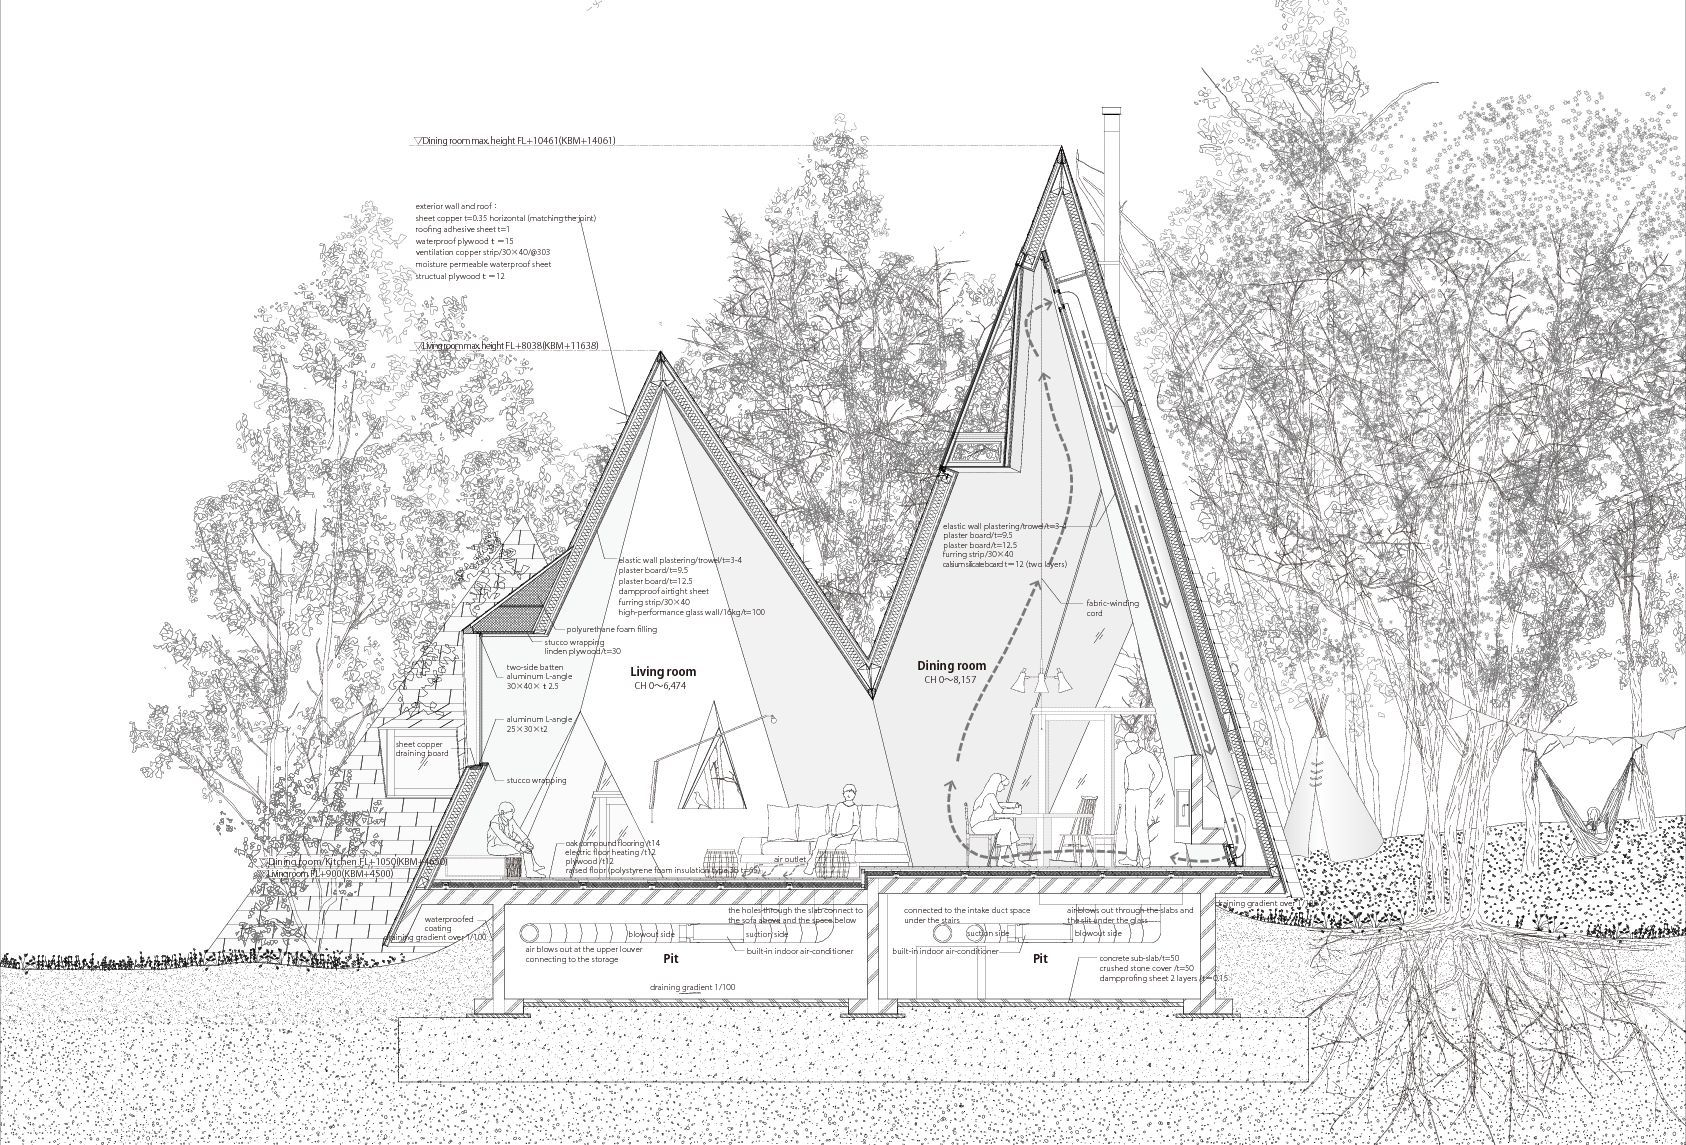 411446115936505798 as well 5151f9d4b3fc4babdd00000a New Xiuyi Kindergarten Proposal Studio 7 Of Urban Architecture China Image together with 57abcf98e58ecef5d4000161 H3 House Luciano Kruk Plan 3 further 426364289699458274 moreover 838232549365021934. on 3 pin